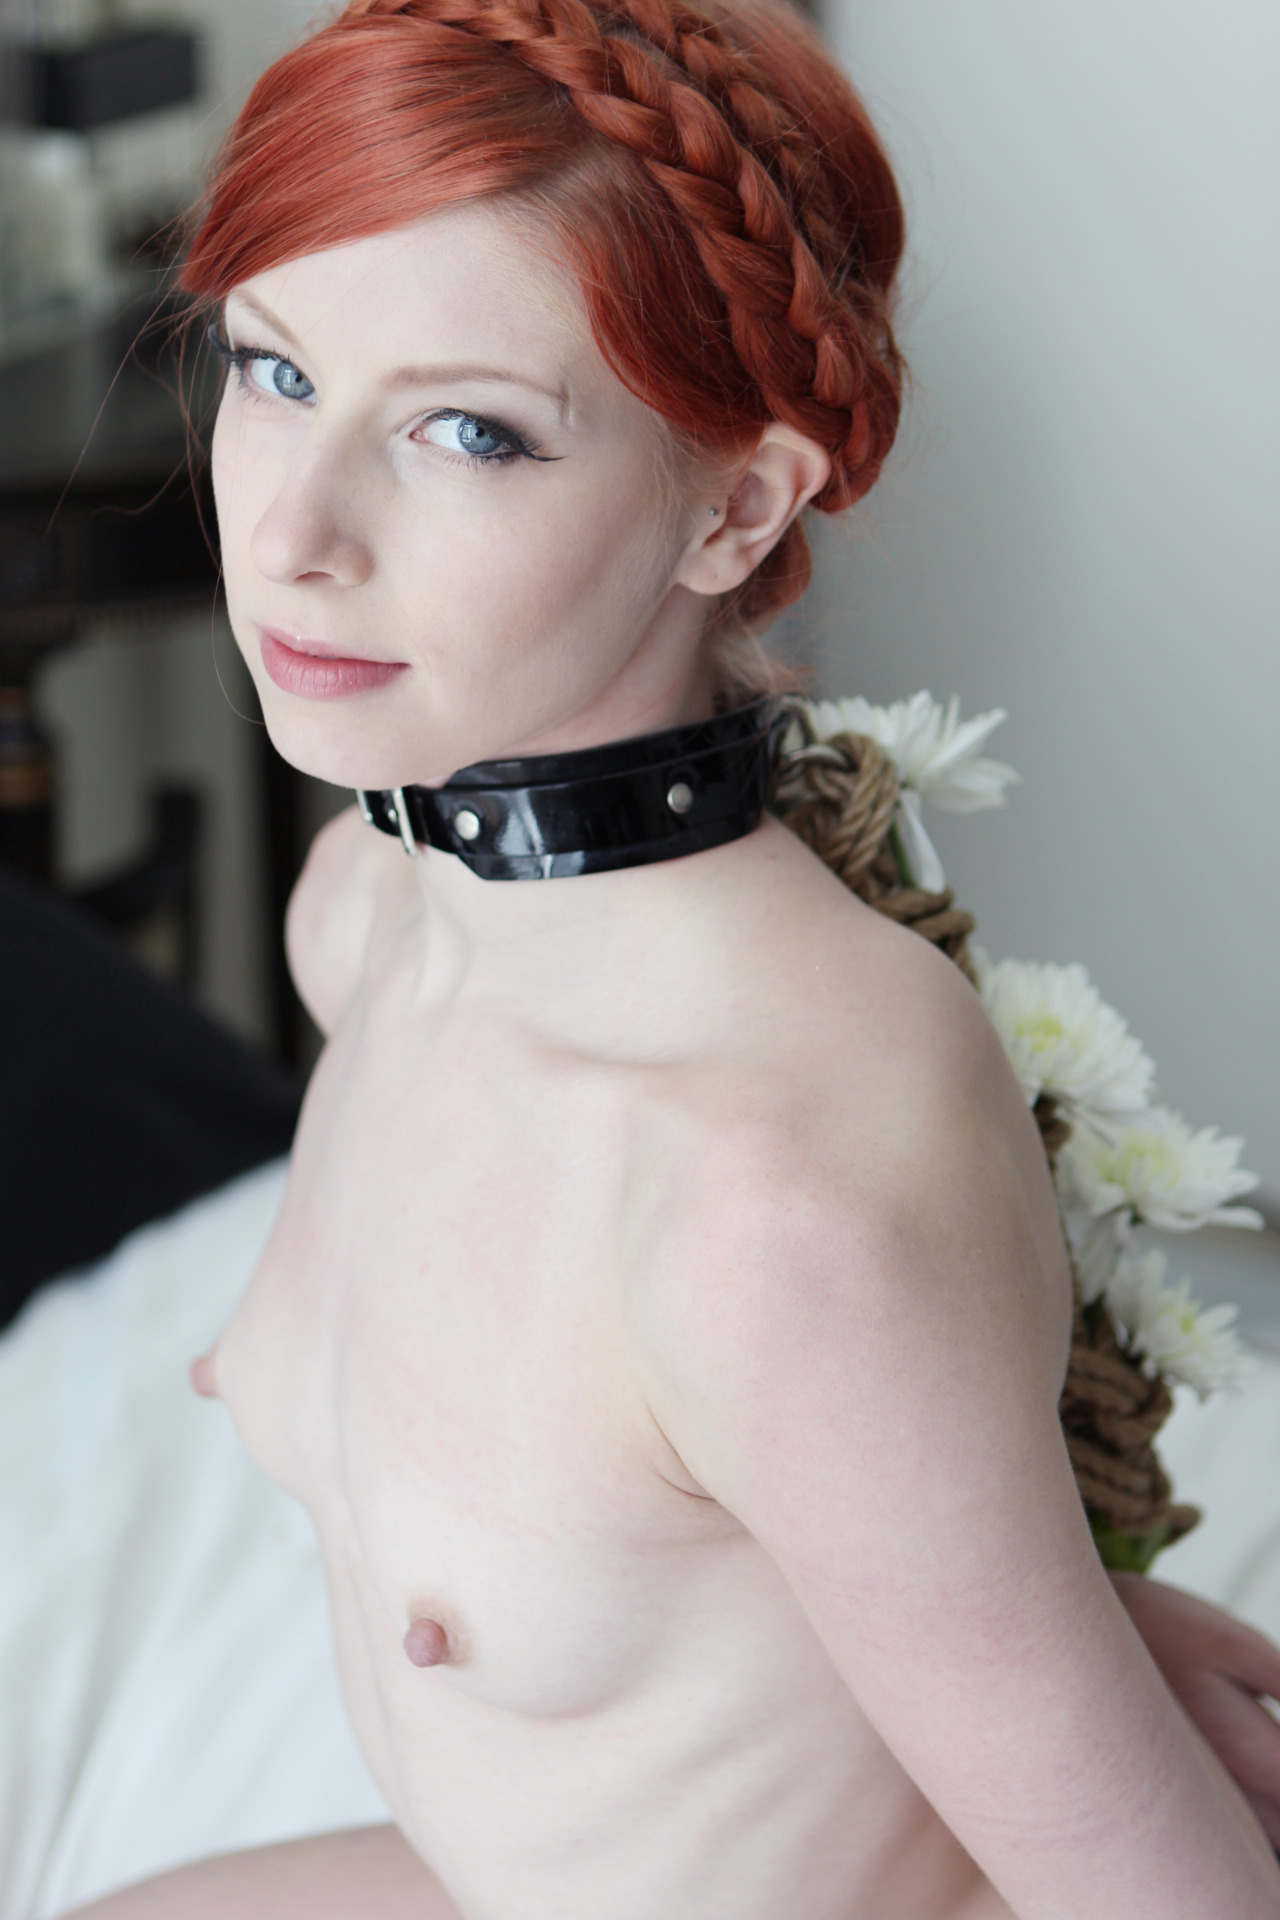 showing media posts for fnaf foxy feet xxx EricaRogers #braids #collared #pale #sexy #hot #smalltits #hardnipples #ginger #sultry #tiedup #bdsm #petite #thatlook